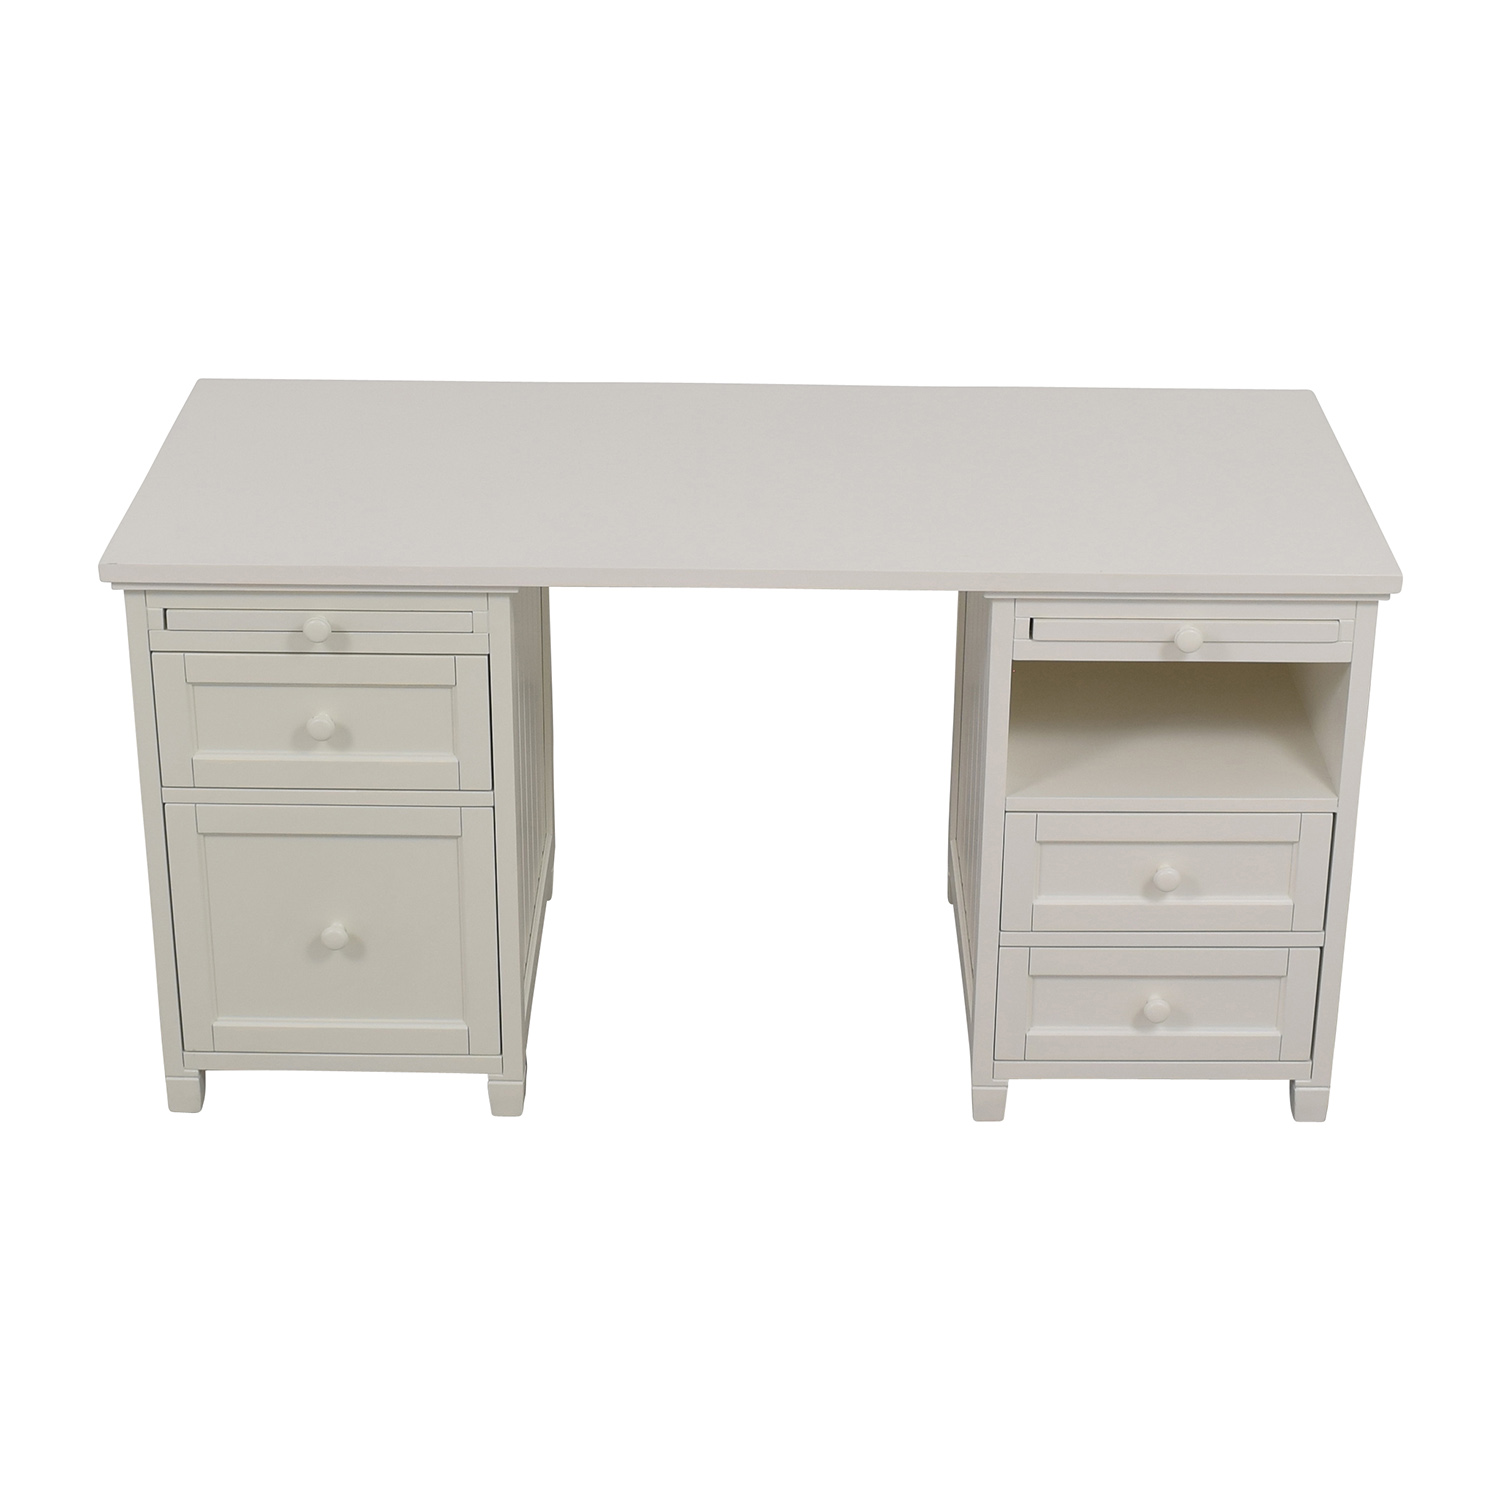 Pottery Barn Pottery Barn Off-White Four-Drawer Desk coupon